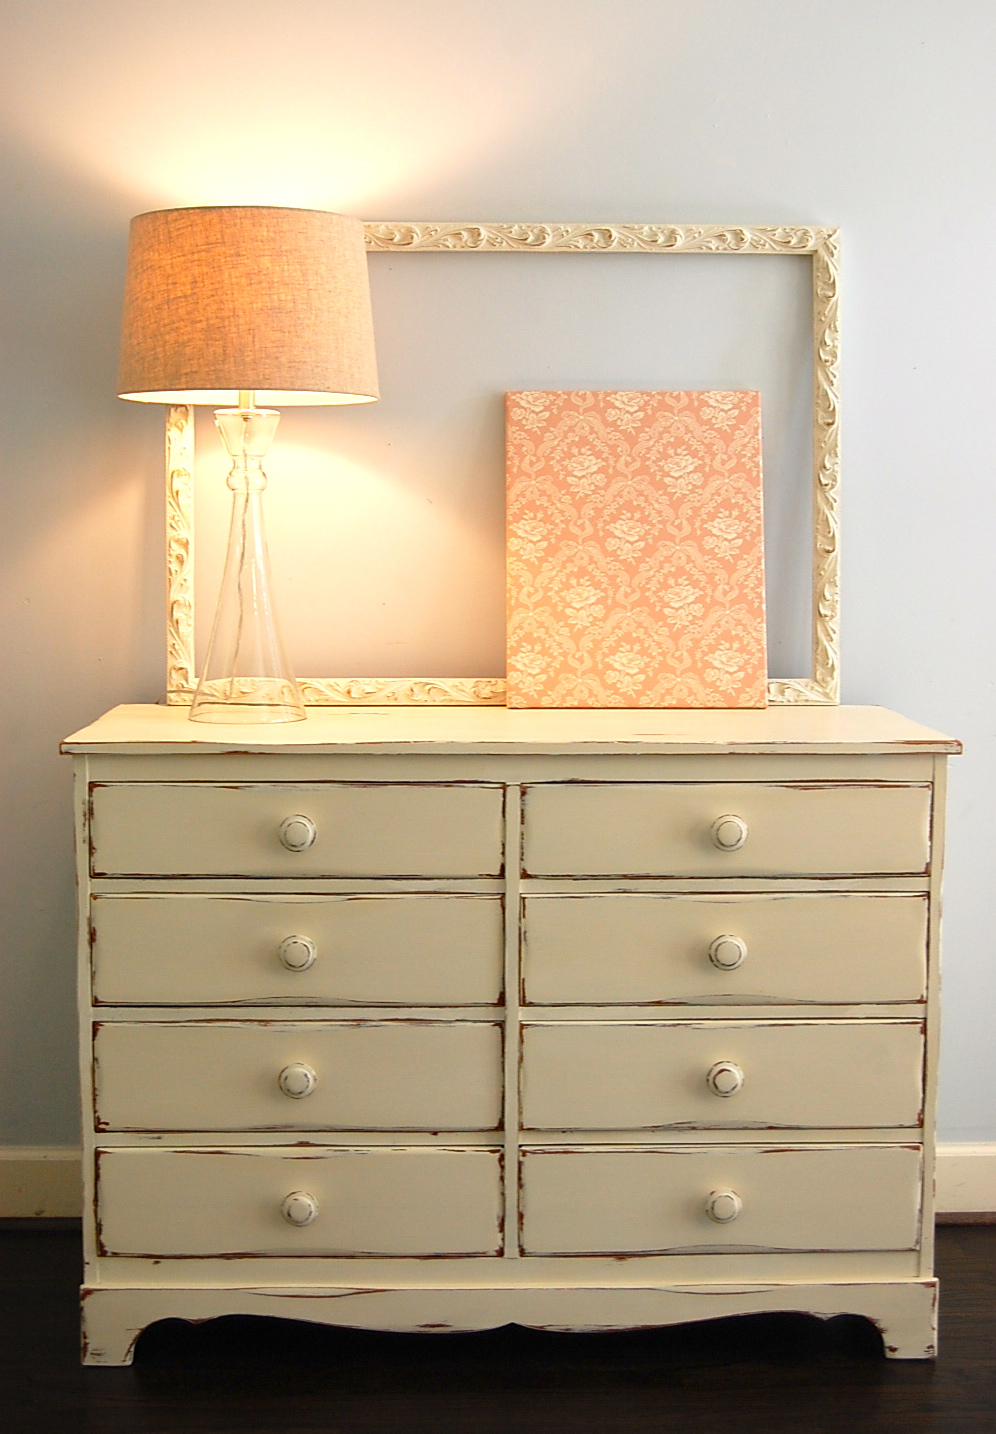 long me large of art photogiraffe white full drawers low wood size chest deep bedroom dresser wayfair